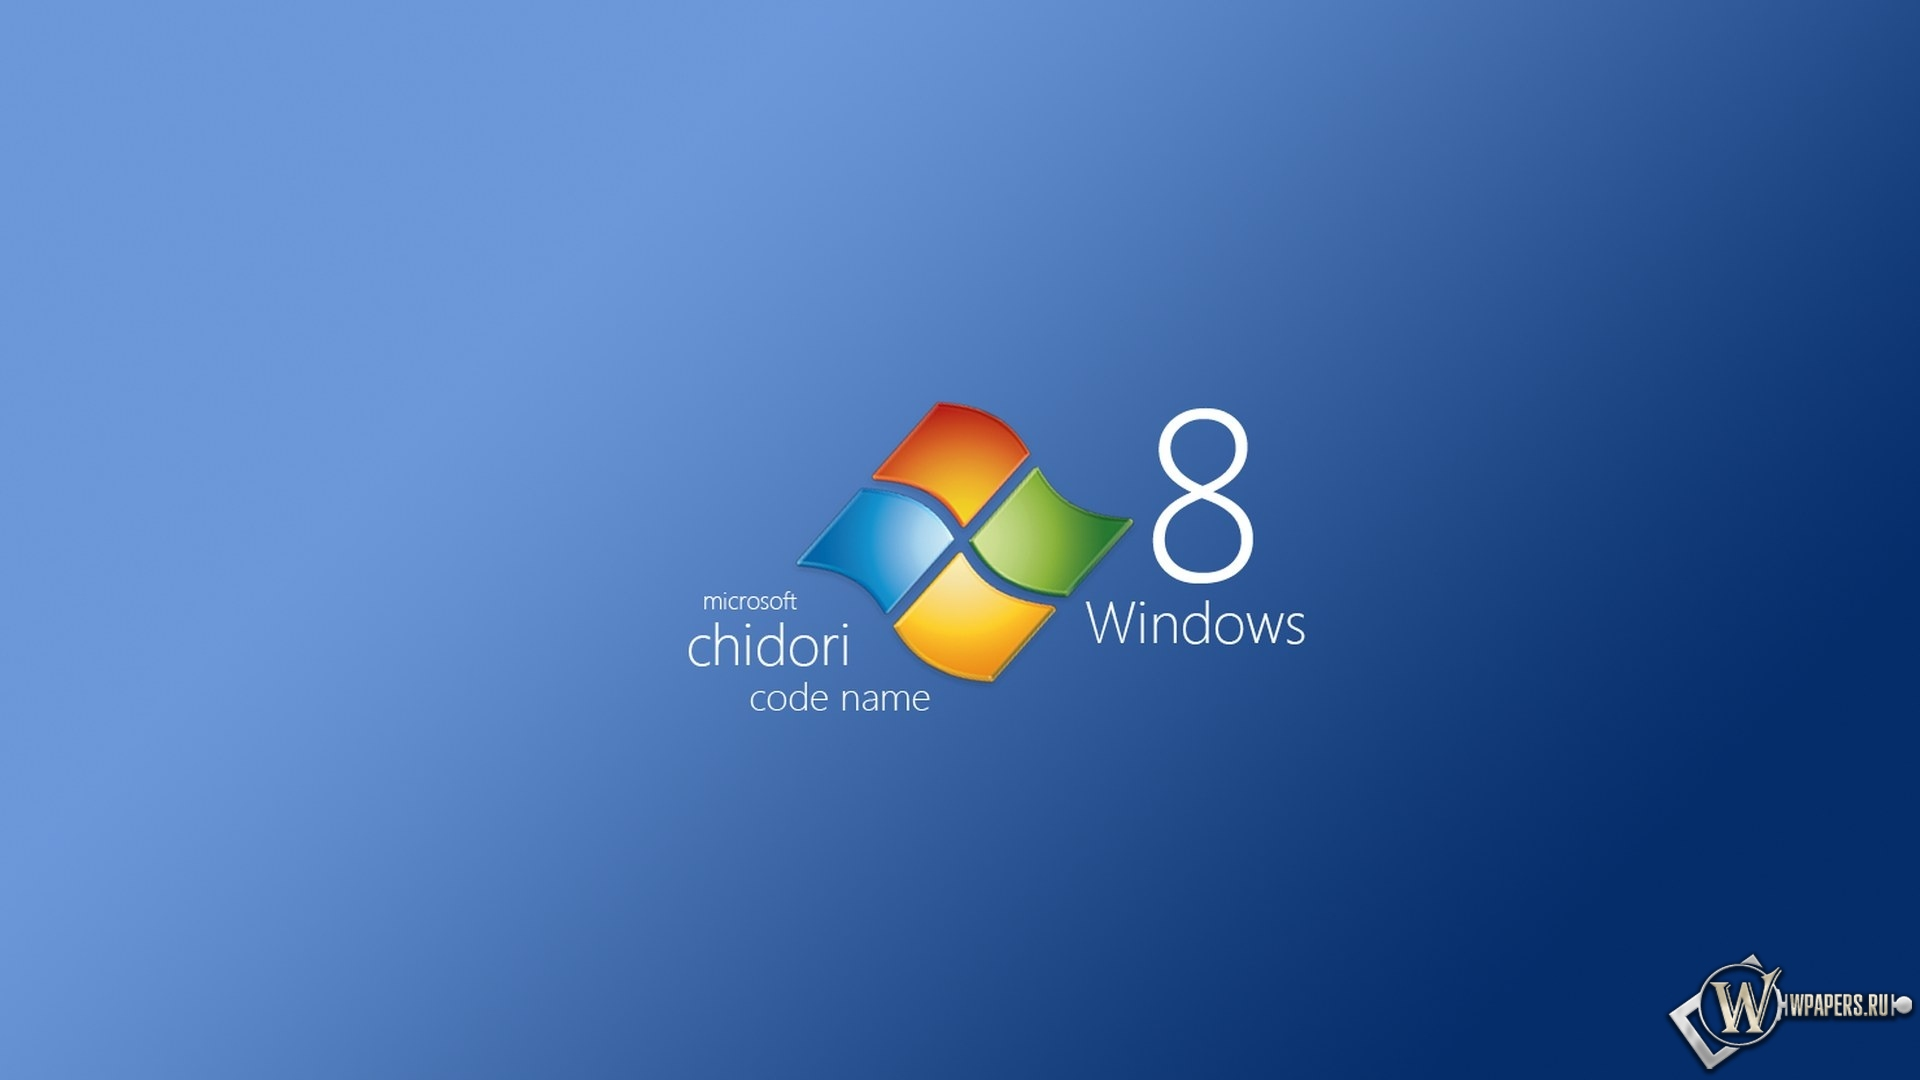 Windows 8 chidori 1920x1080